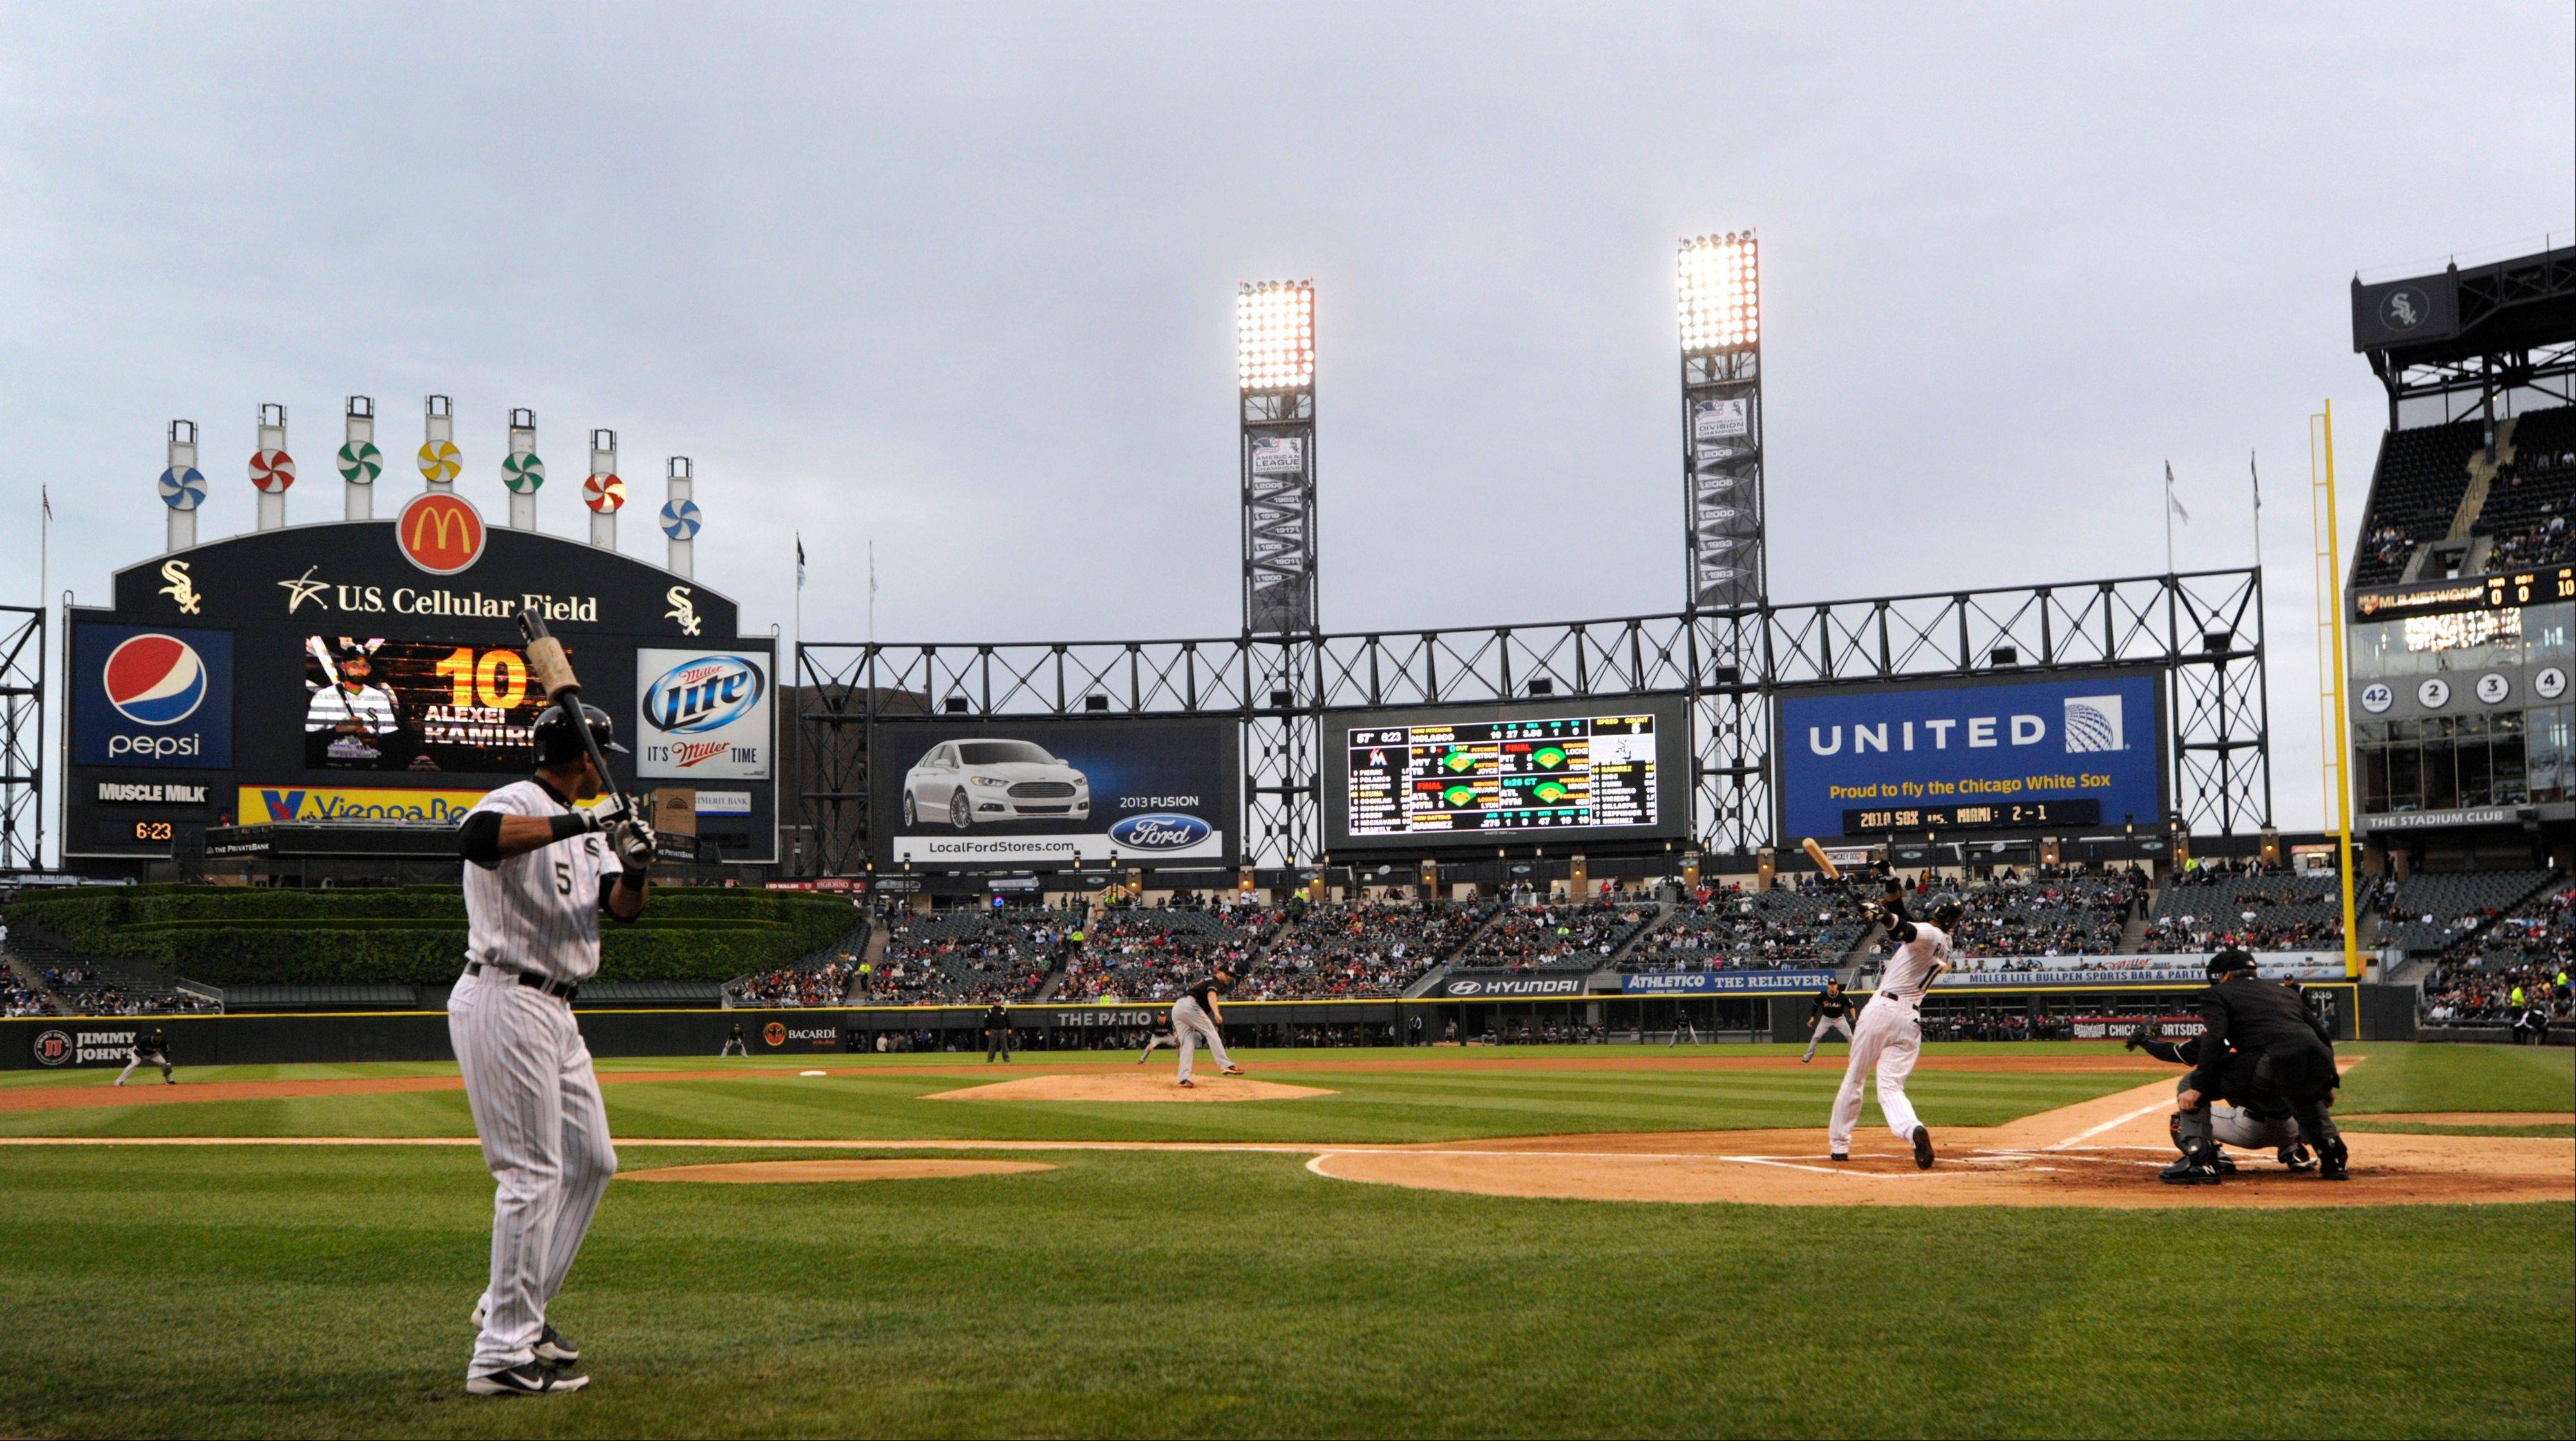 U.S. Cellular Field hosts the first two of four games this week pitting the White Sox against the Cubs.